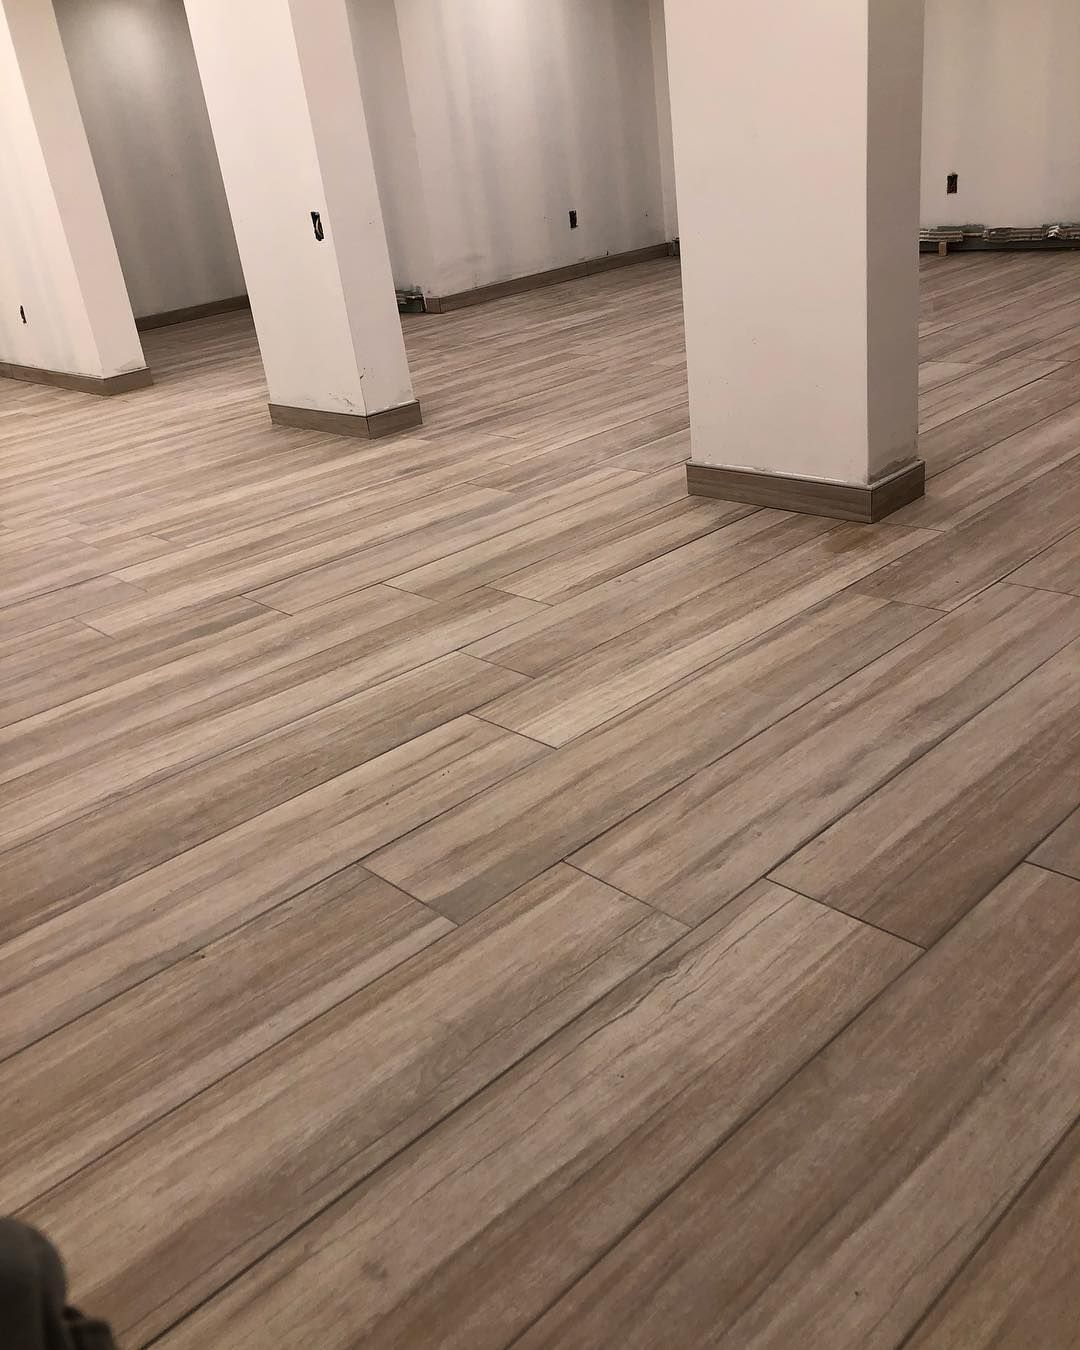 New The 10 Best Home Decor With Pictures 9x48 Porcelain Planks Put Down In This Basement Floor Woo With Images Basement Flooring Options Basement Flooring Flooring